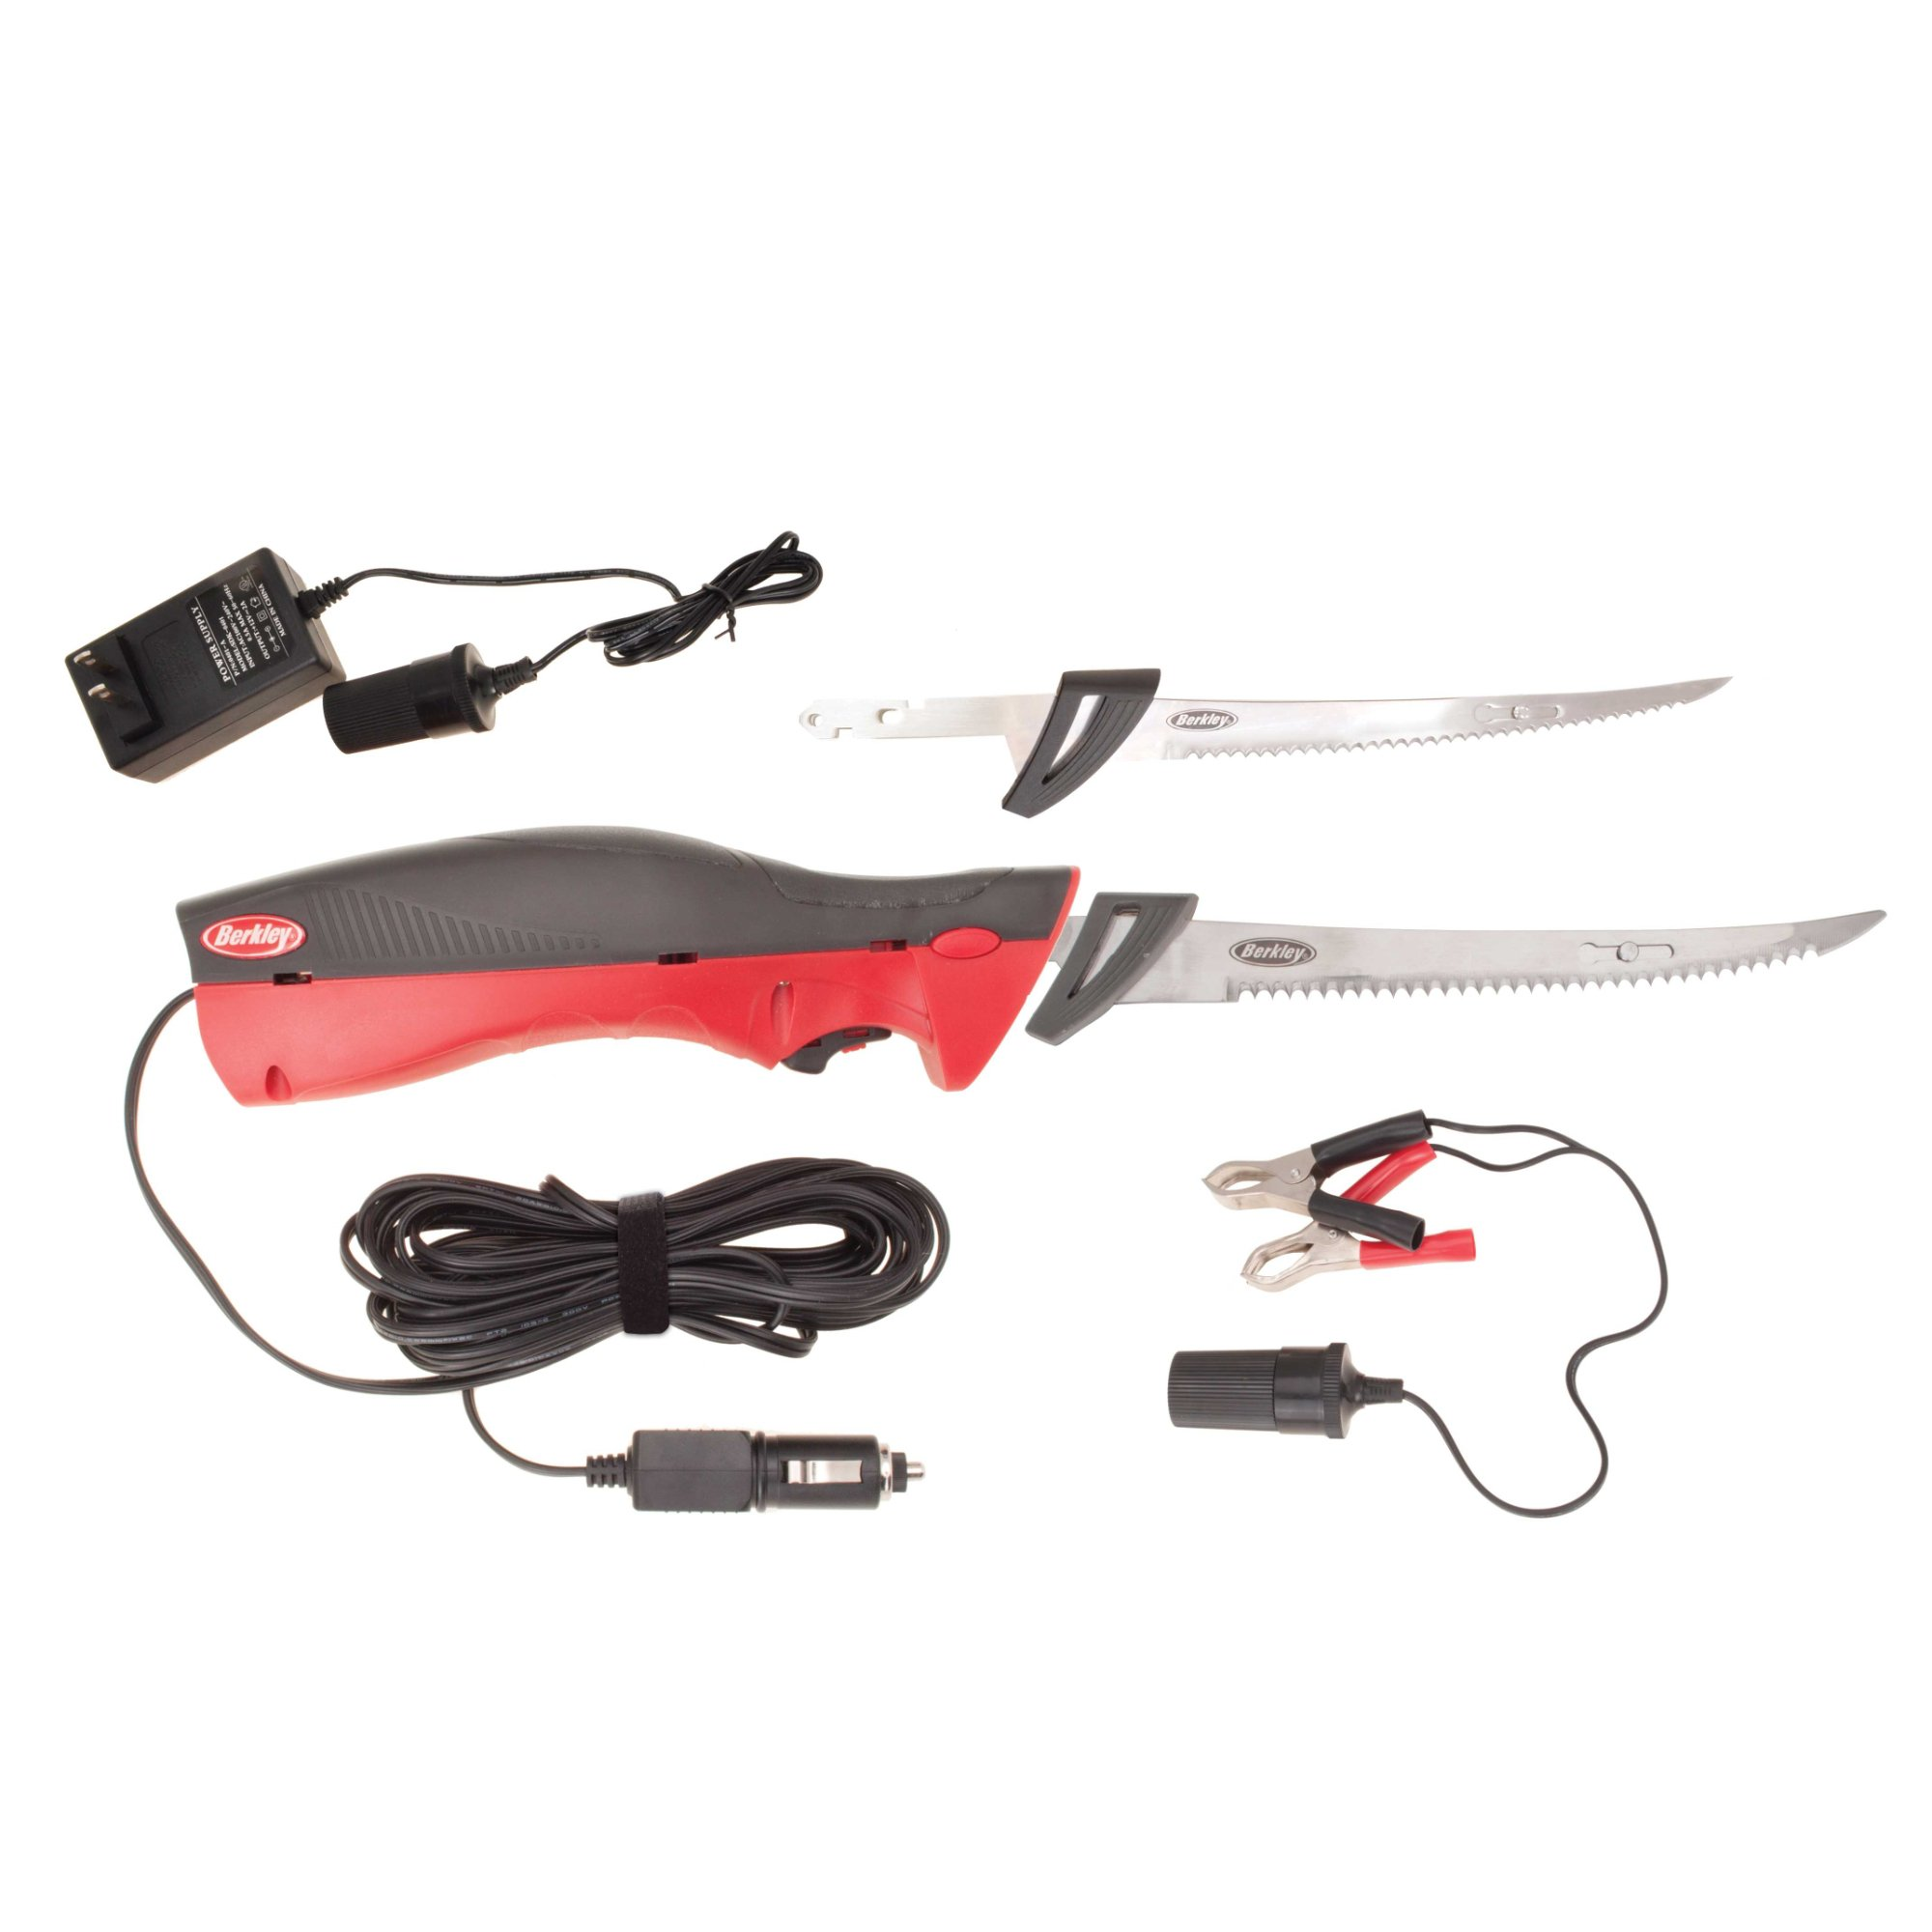 Berkley Fillet Knife Deluxe Electric with Stndrd/Vehicle Plg/Bttry Clips/Case, Red/Blk